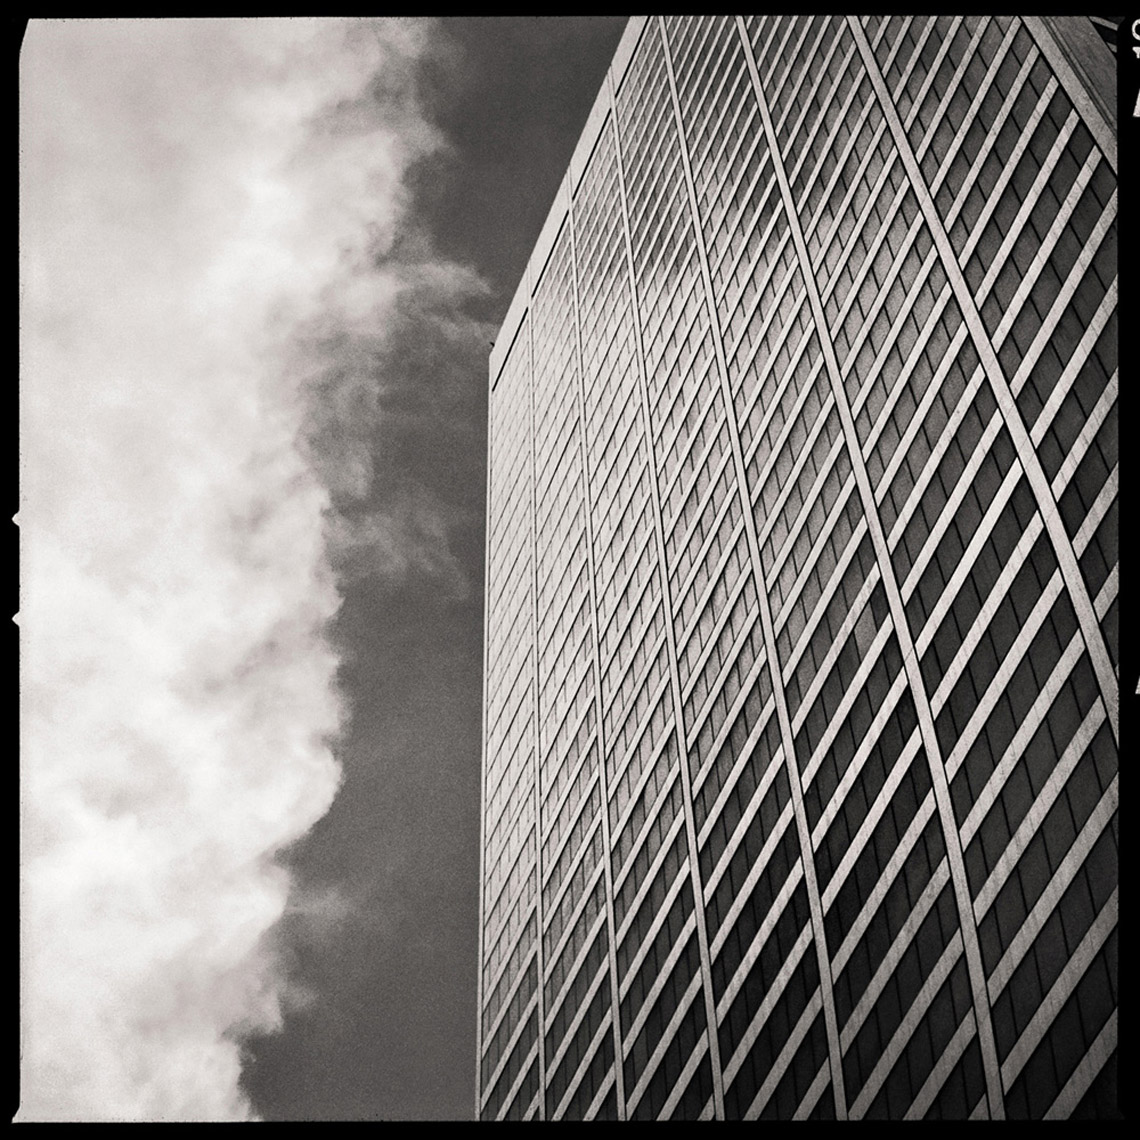 Sean Perry Photographs • W. R. Grace Building, from the series Monolith